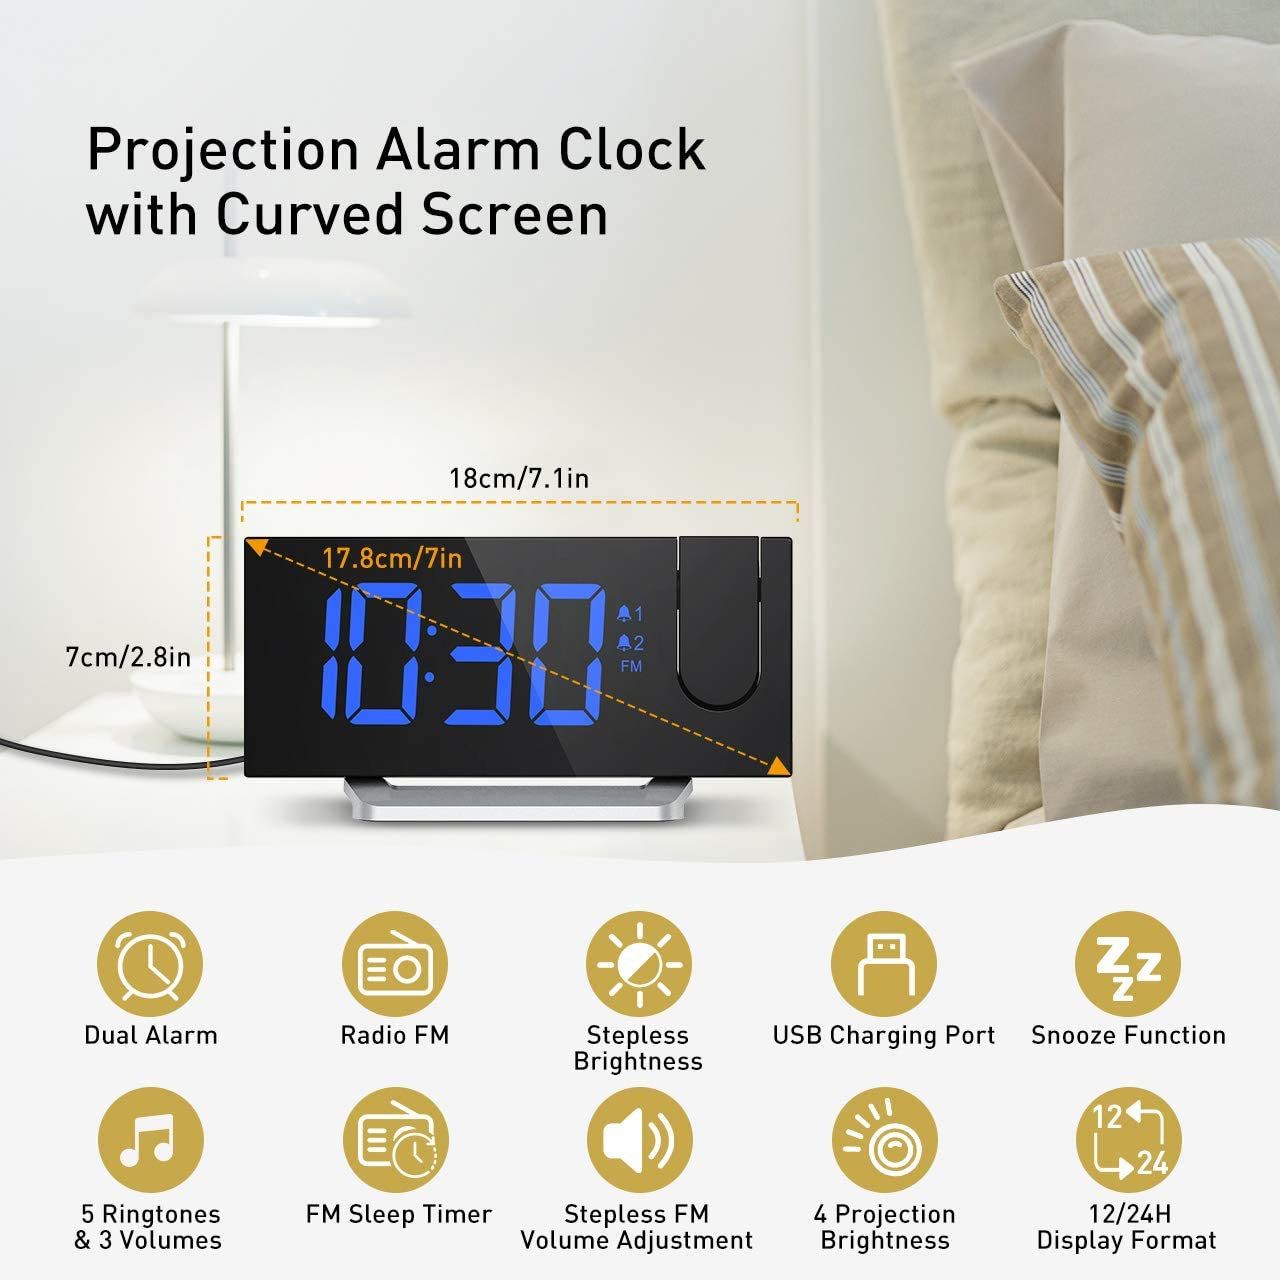 Mpow Projection Alarm Clock, Radio Digital Clock with USB Charger, 0-100 Full Range Brightness Dimmer, Dual Alarm Clock with 5 Sounds for Heavy Sleeper, Snooze